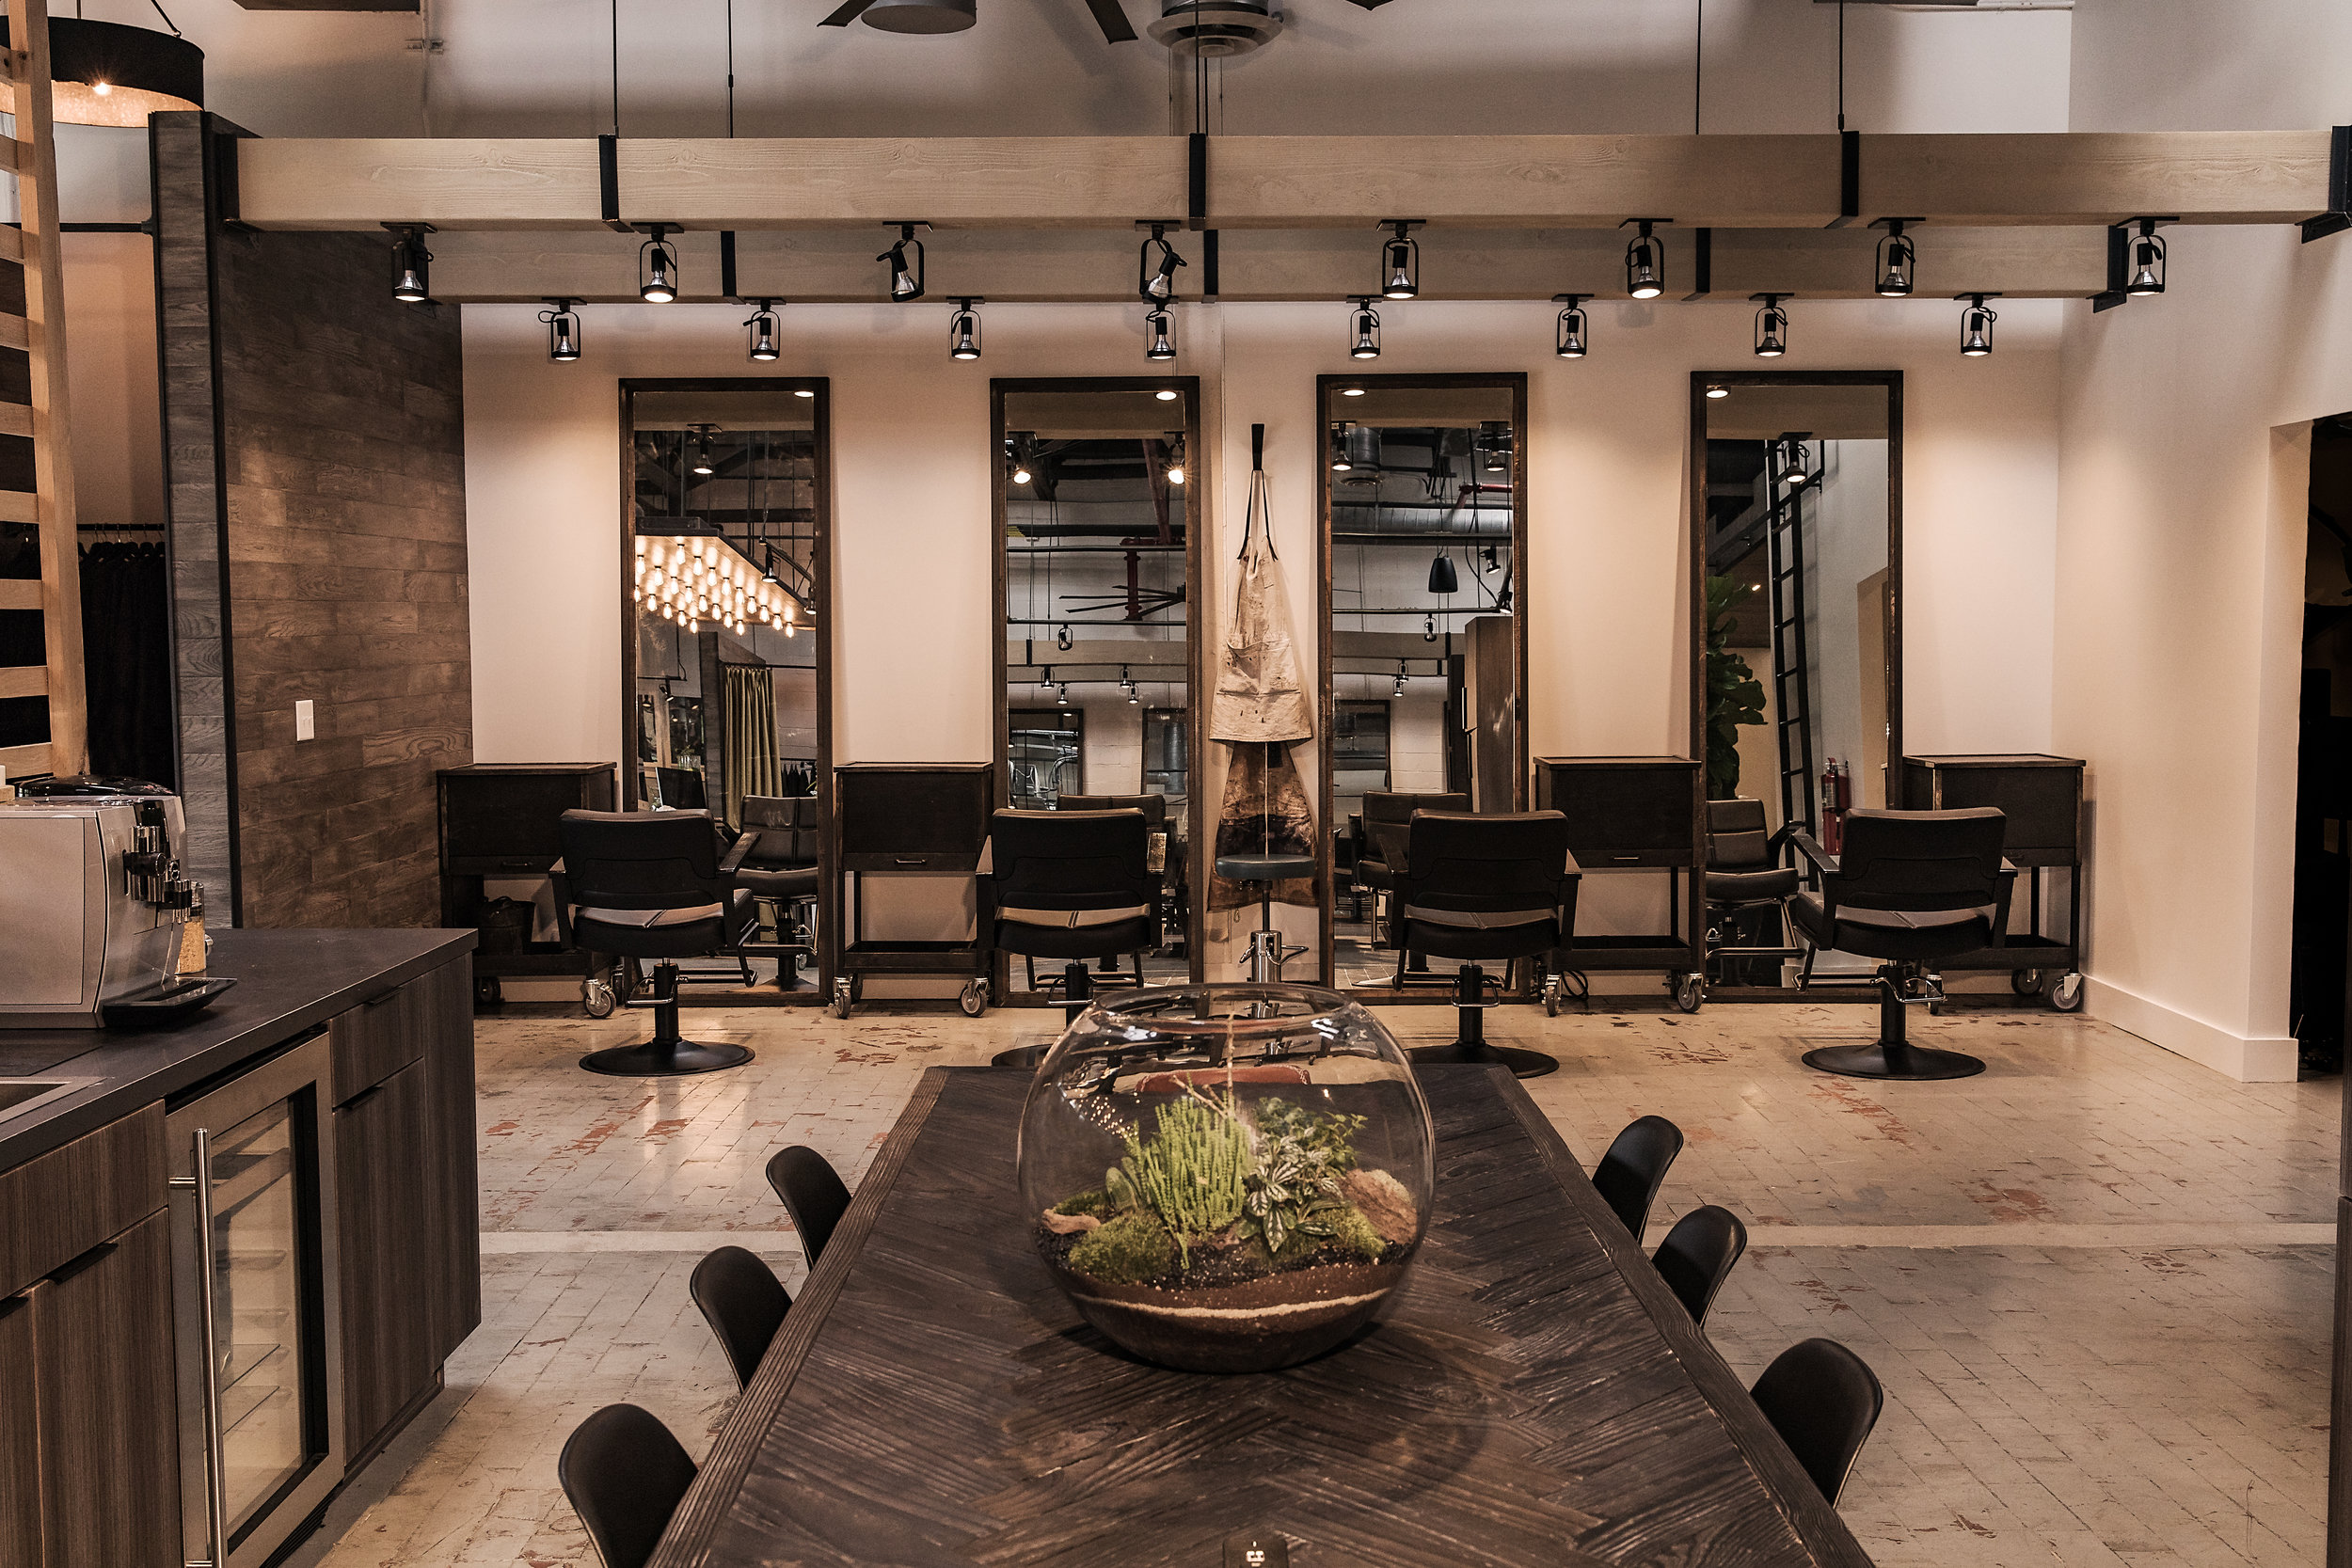 About our space - Salon Vagabond is the perfect space for stylist classes, workshops or meetings.